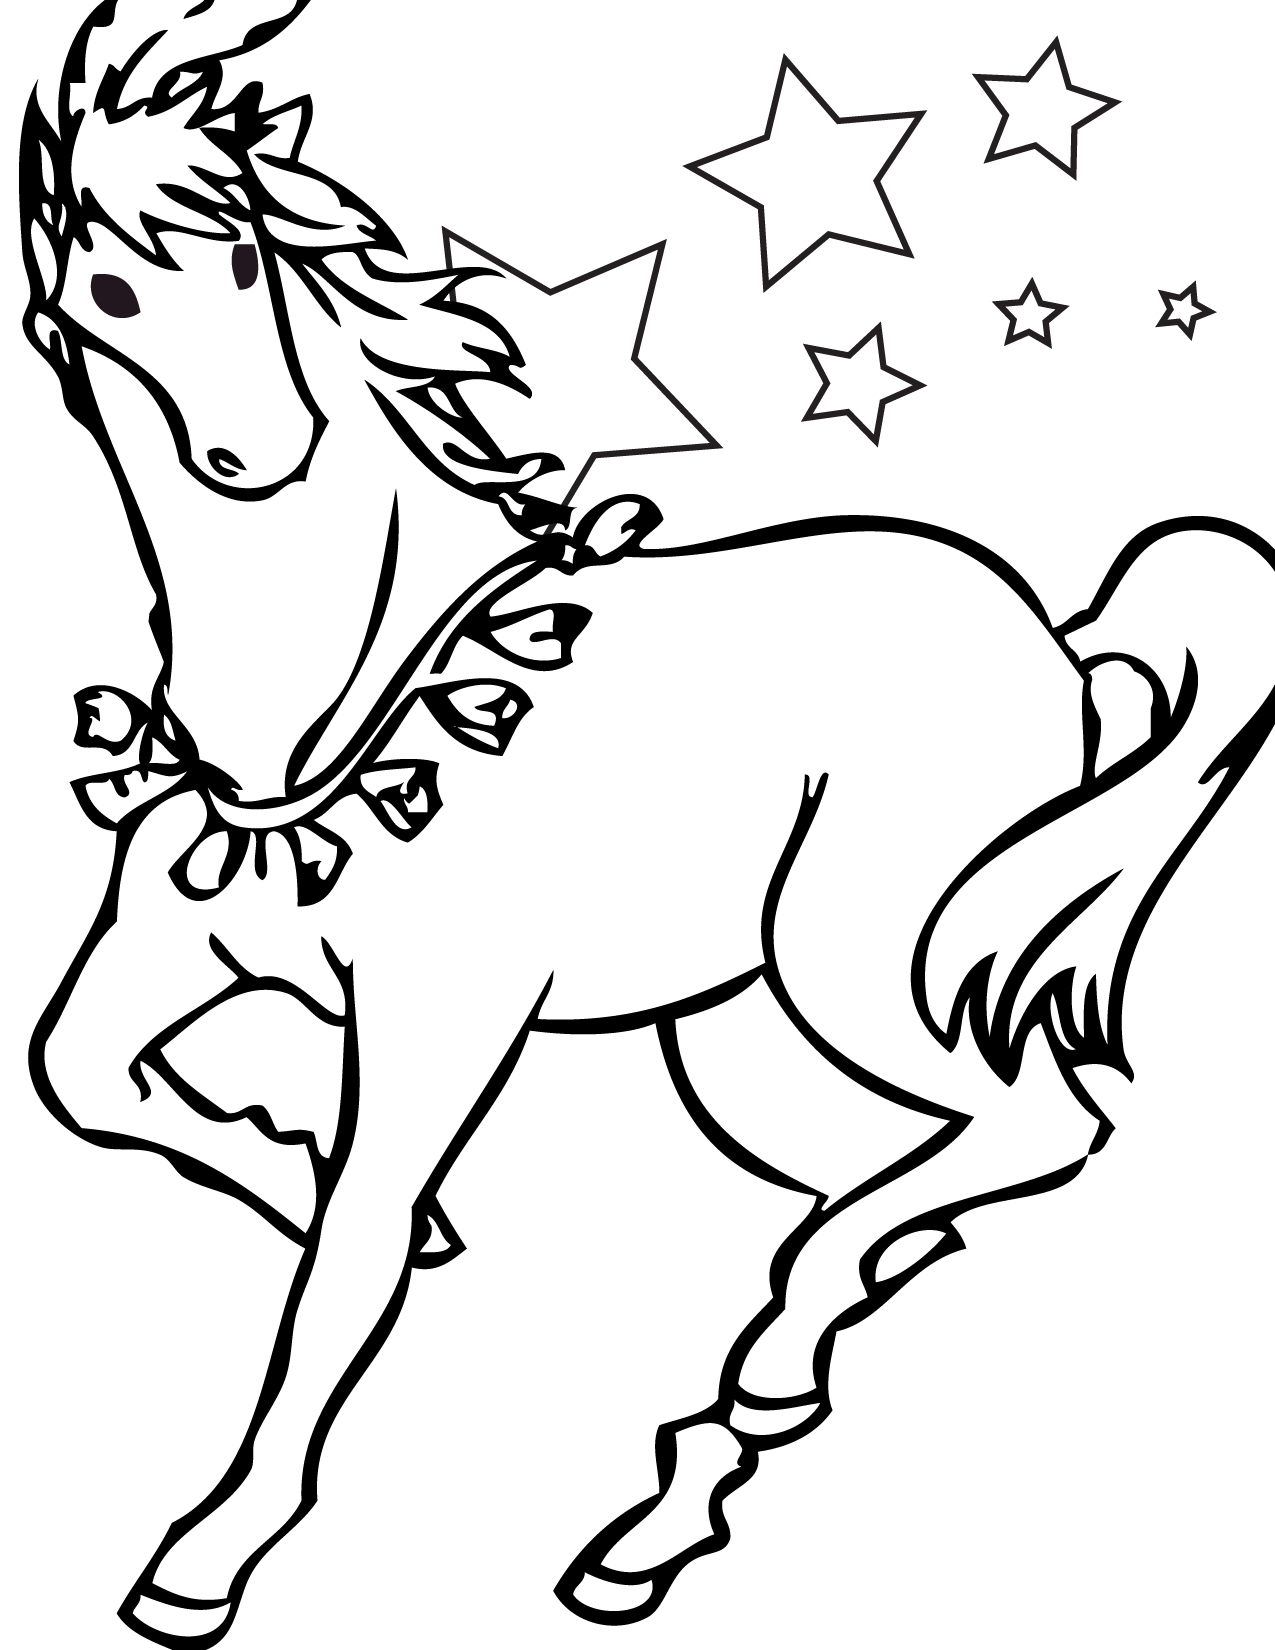 Free printable horse coloring pages for kids for Fun coloring pages for kids